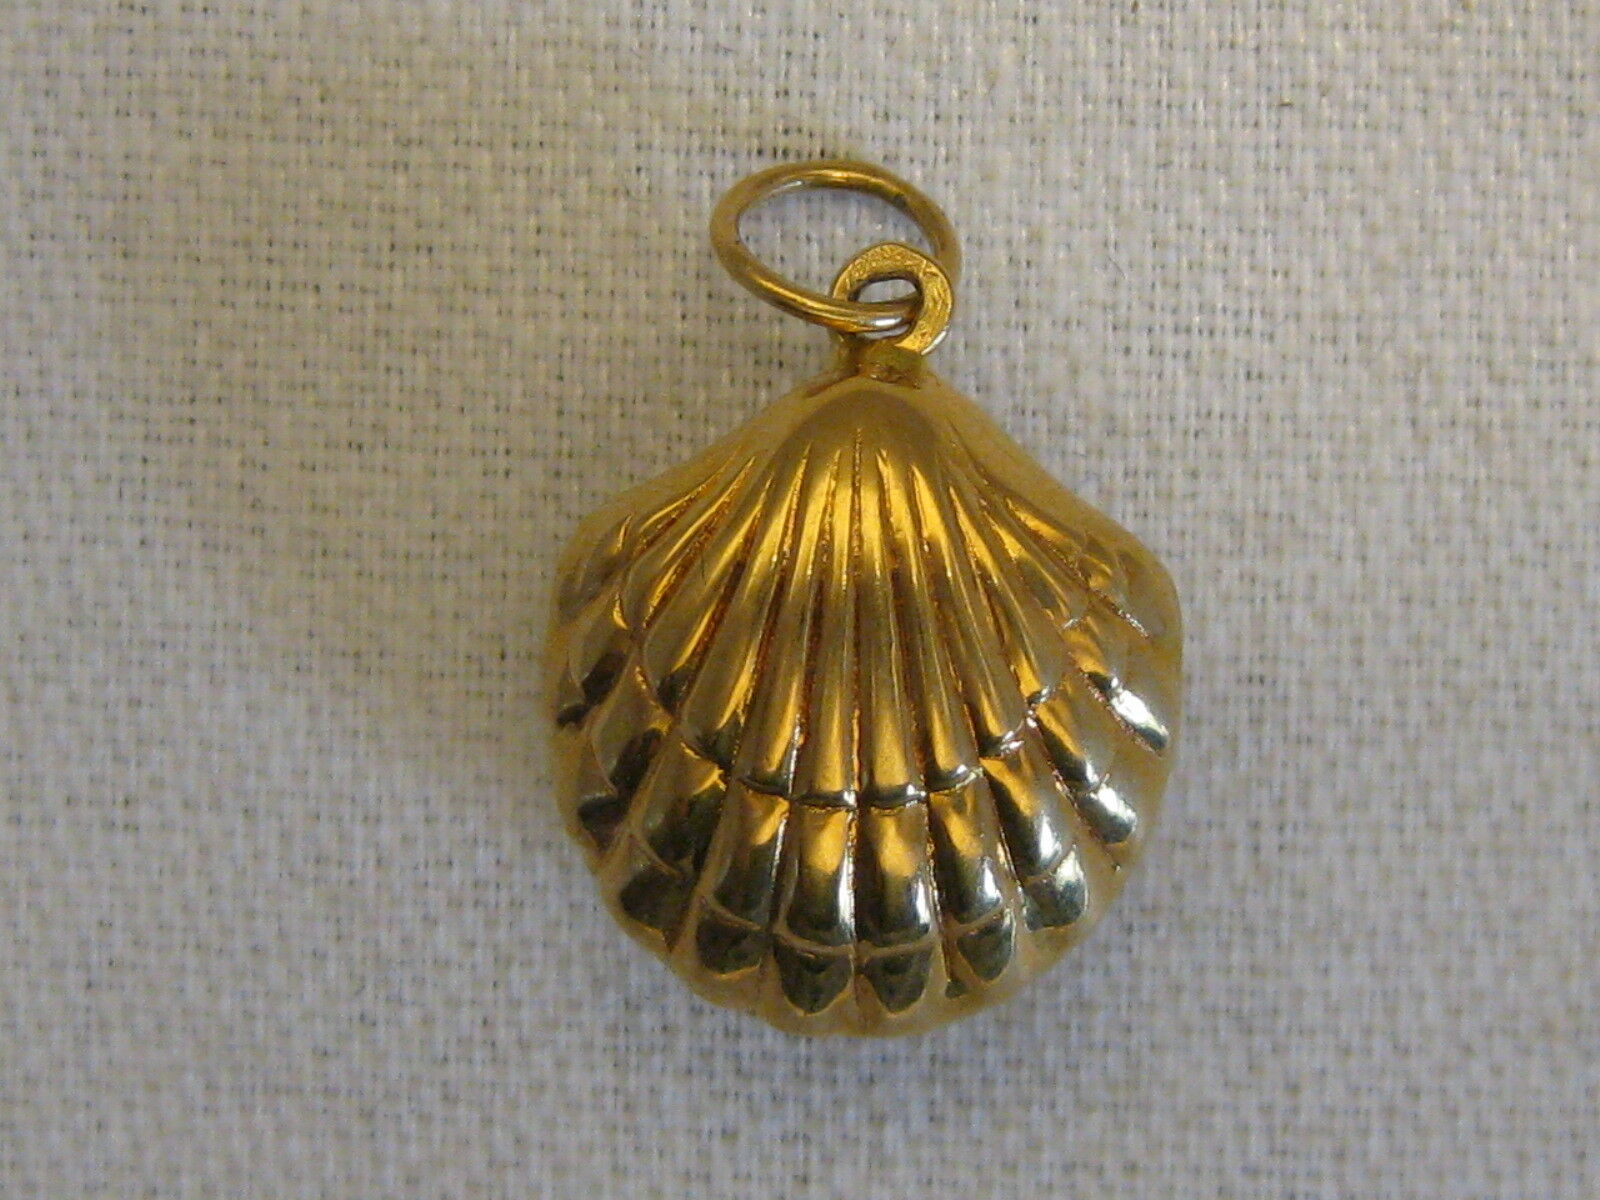 A NEW Portuguese 19.2 KT gold PUFFED CLAM CHARM FROM PORTUGAL